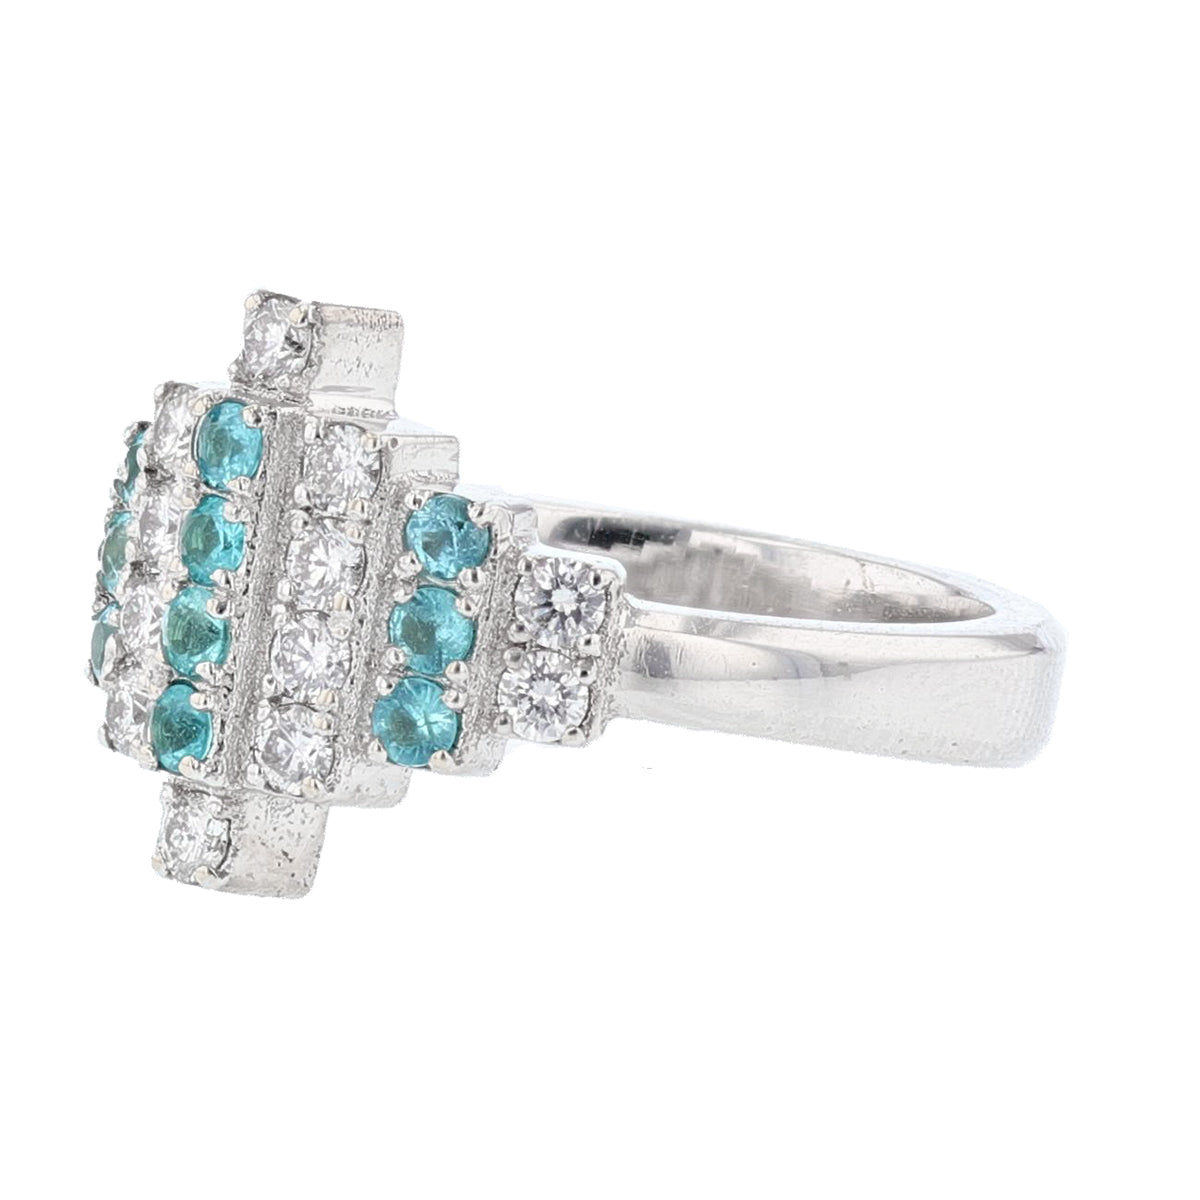 18K White Gold Paraiba Tourmaline and Diamond Ring - Nazarelle